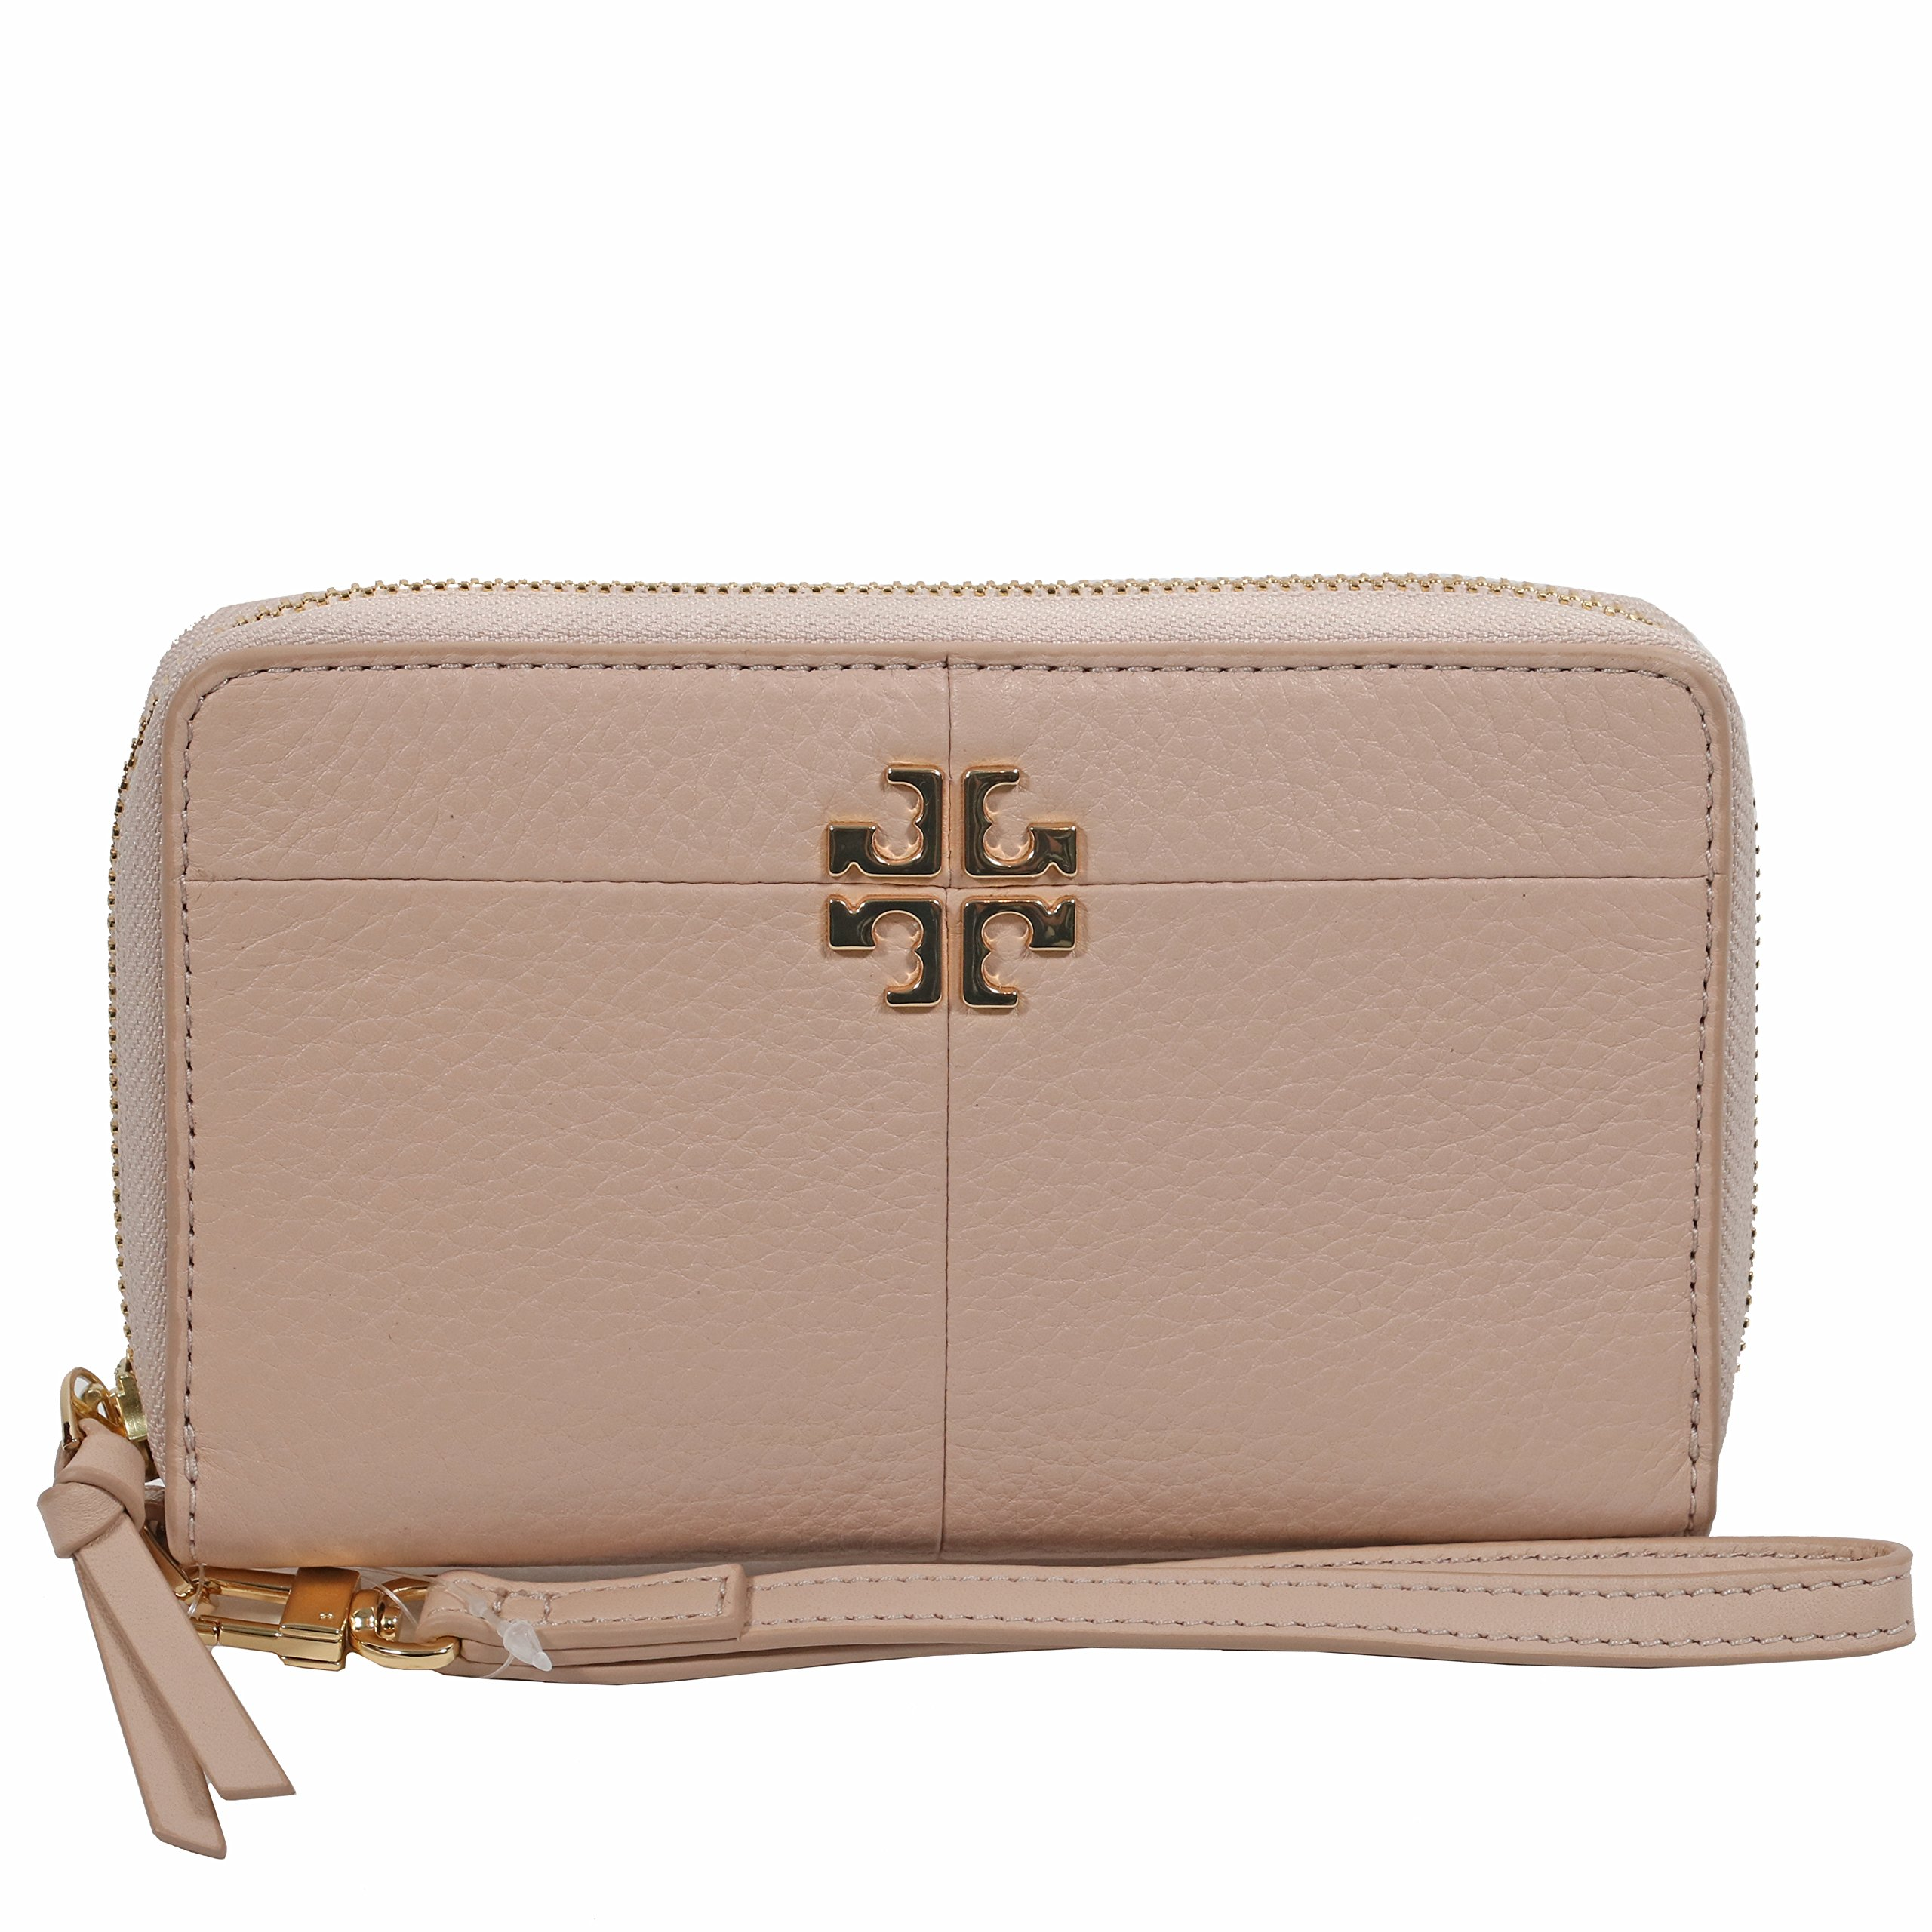 Tory Burch Wallet Wristlet Ivy Smartphone (Light OAK)